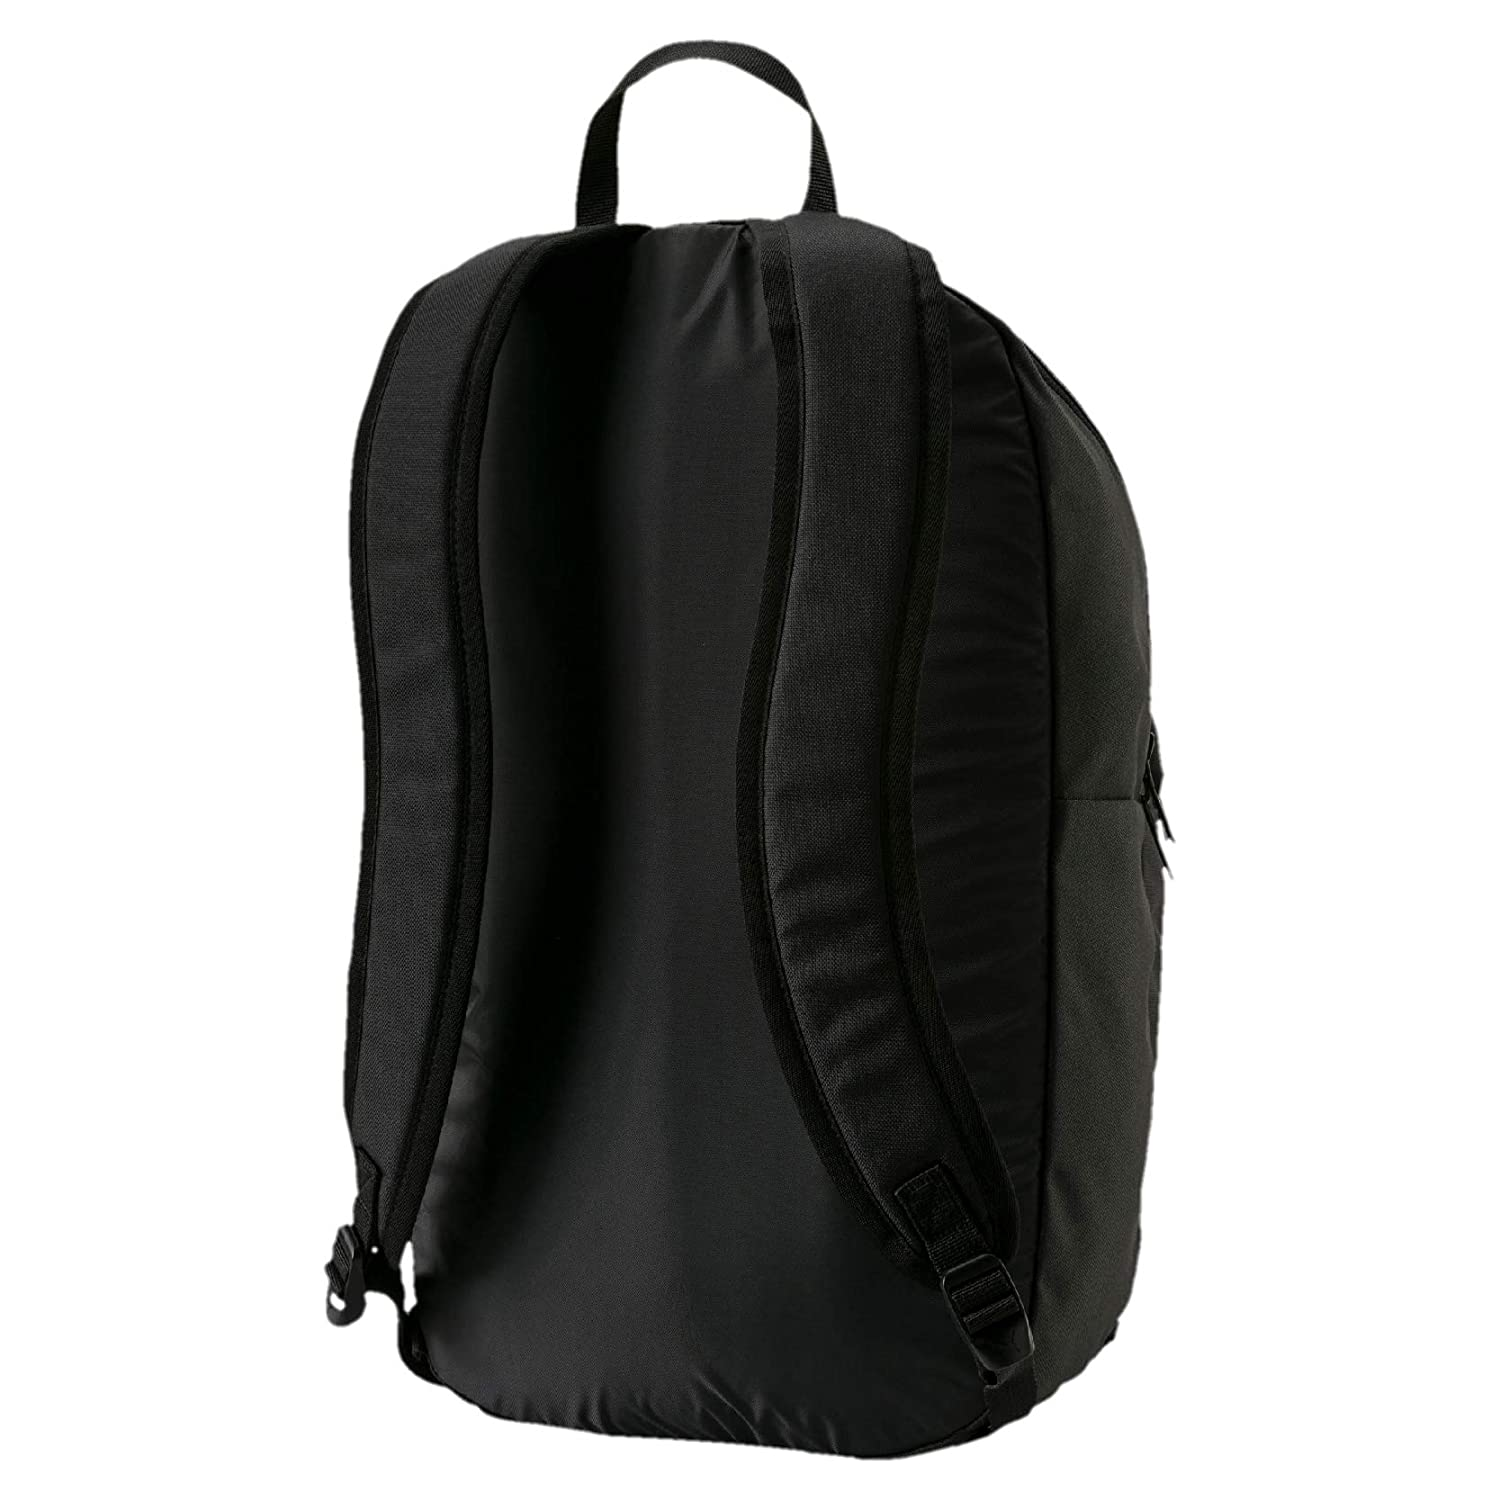 Puma Black Casual Backpack (7489801)  Amazon.in  Bags b22b8e1cebec2